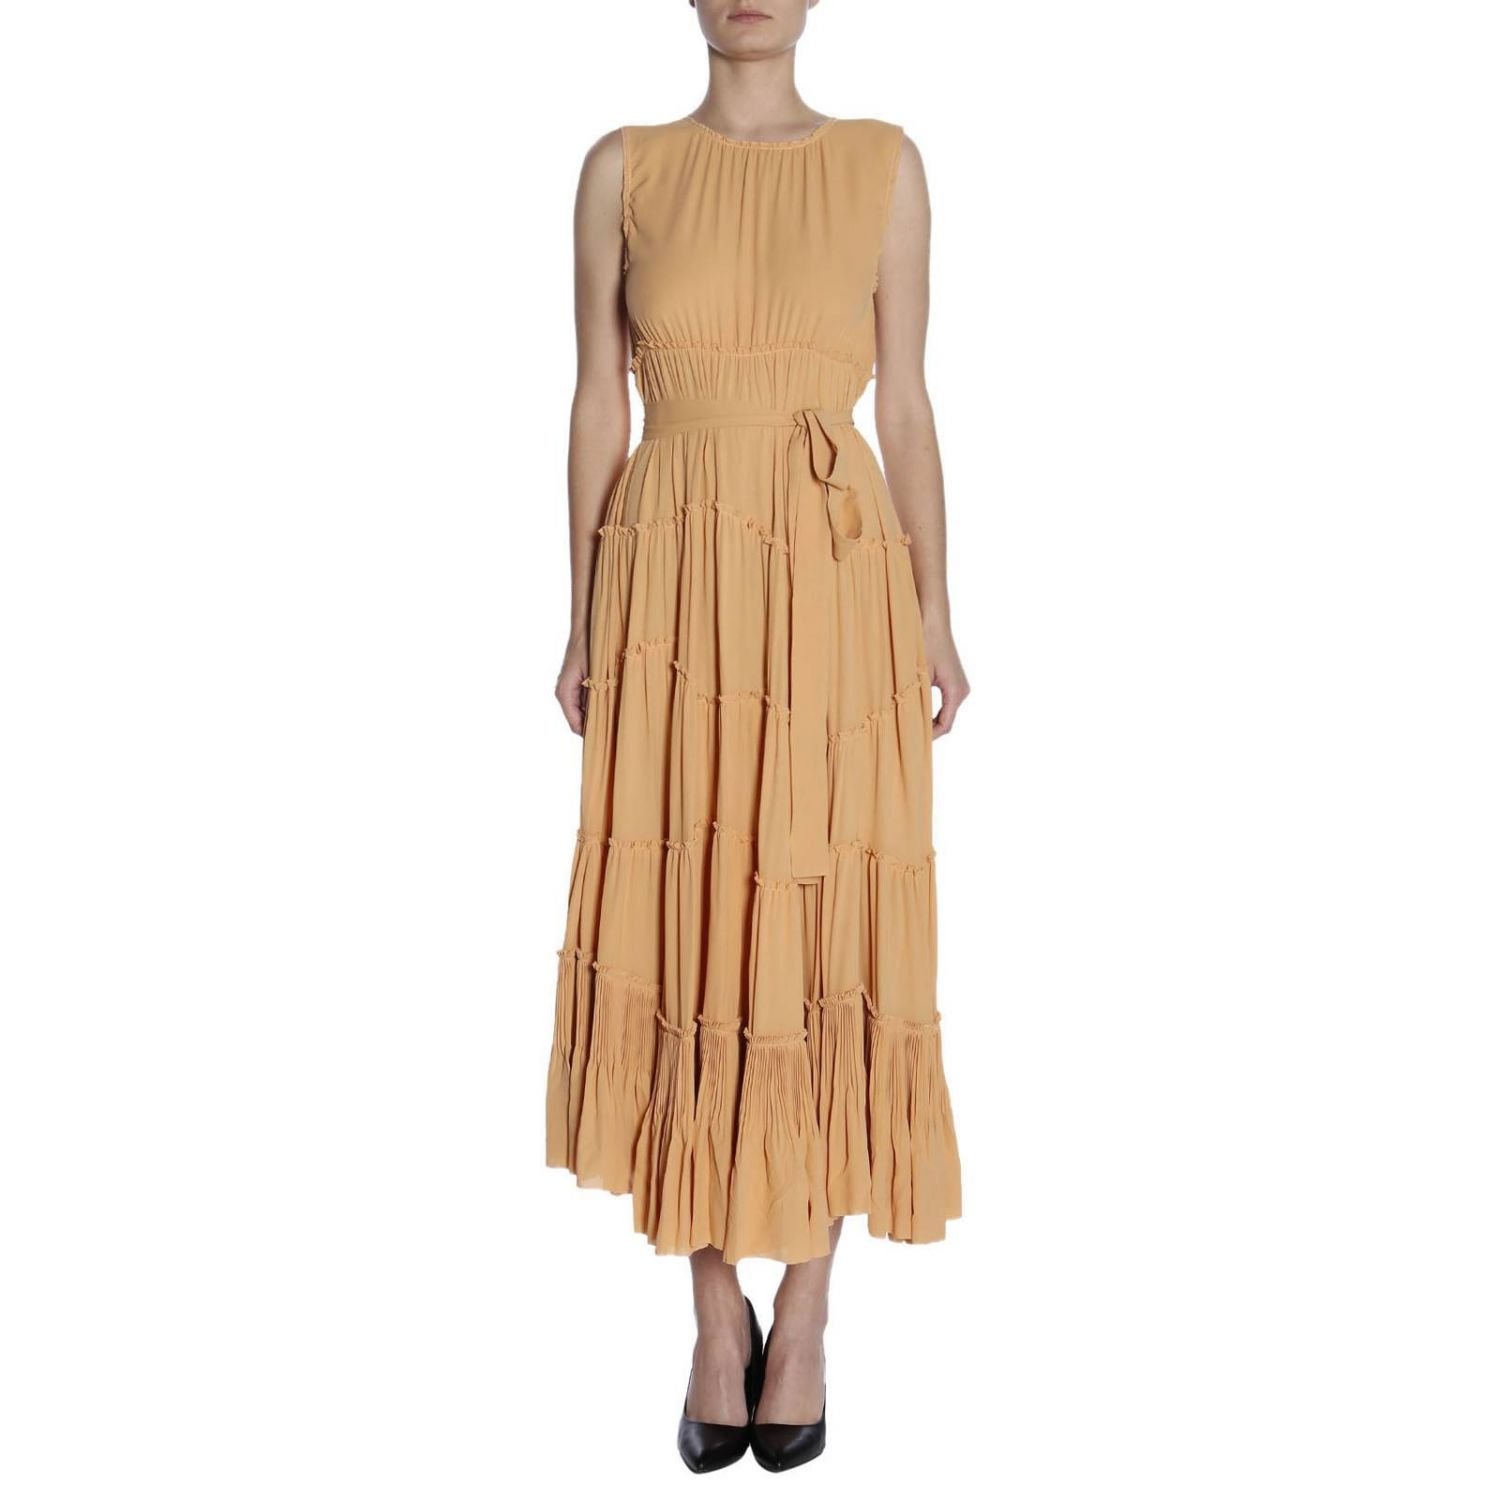 Dress Bottega Veneta: Dress women Bottega Veneta peach 1